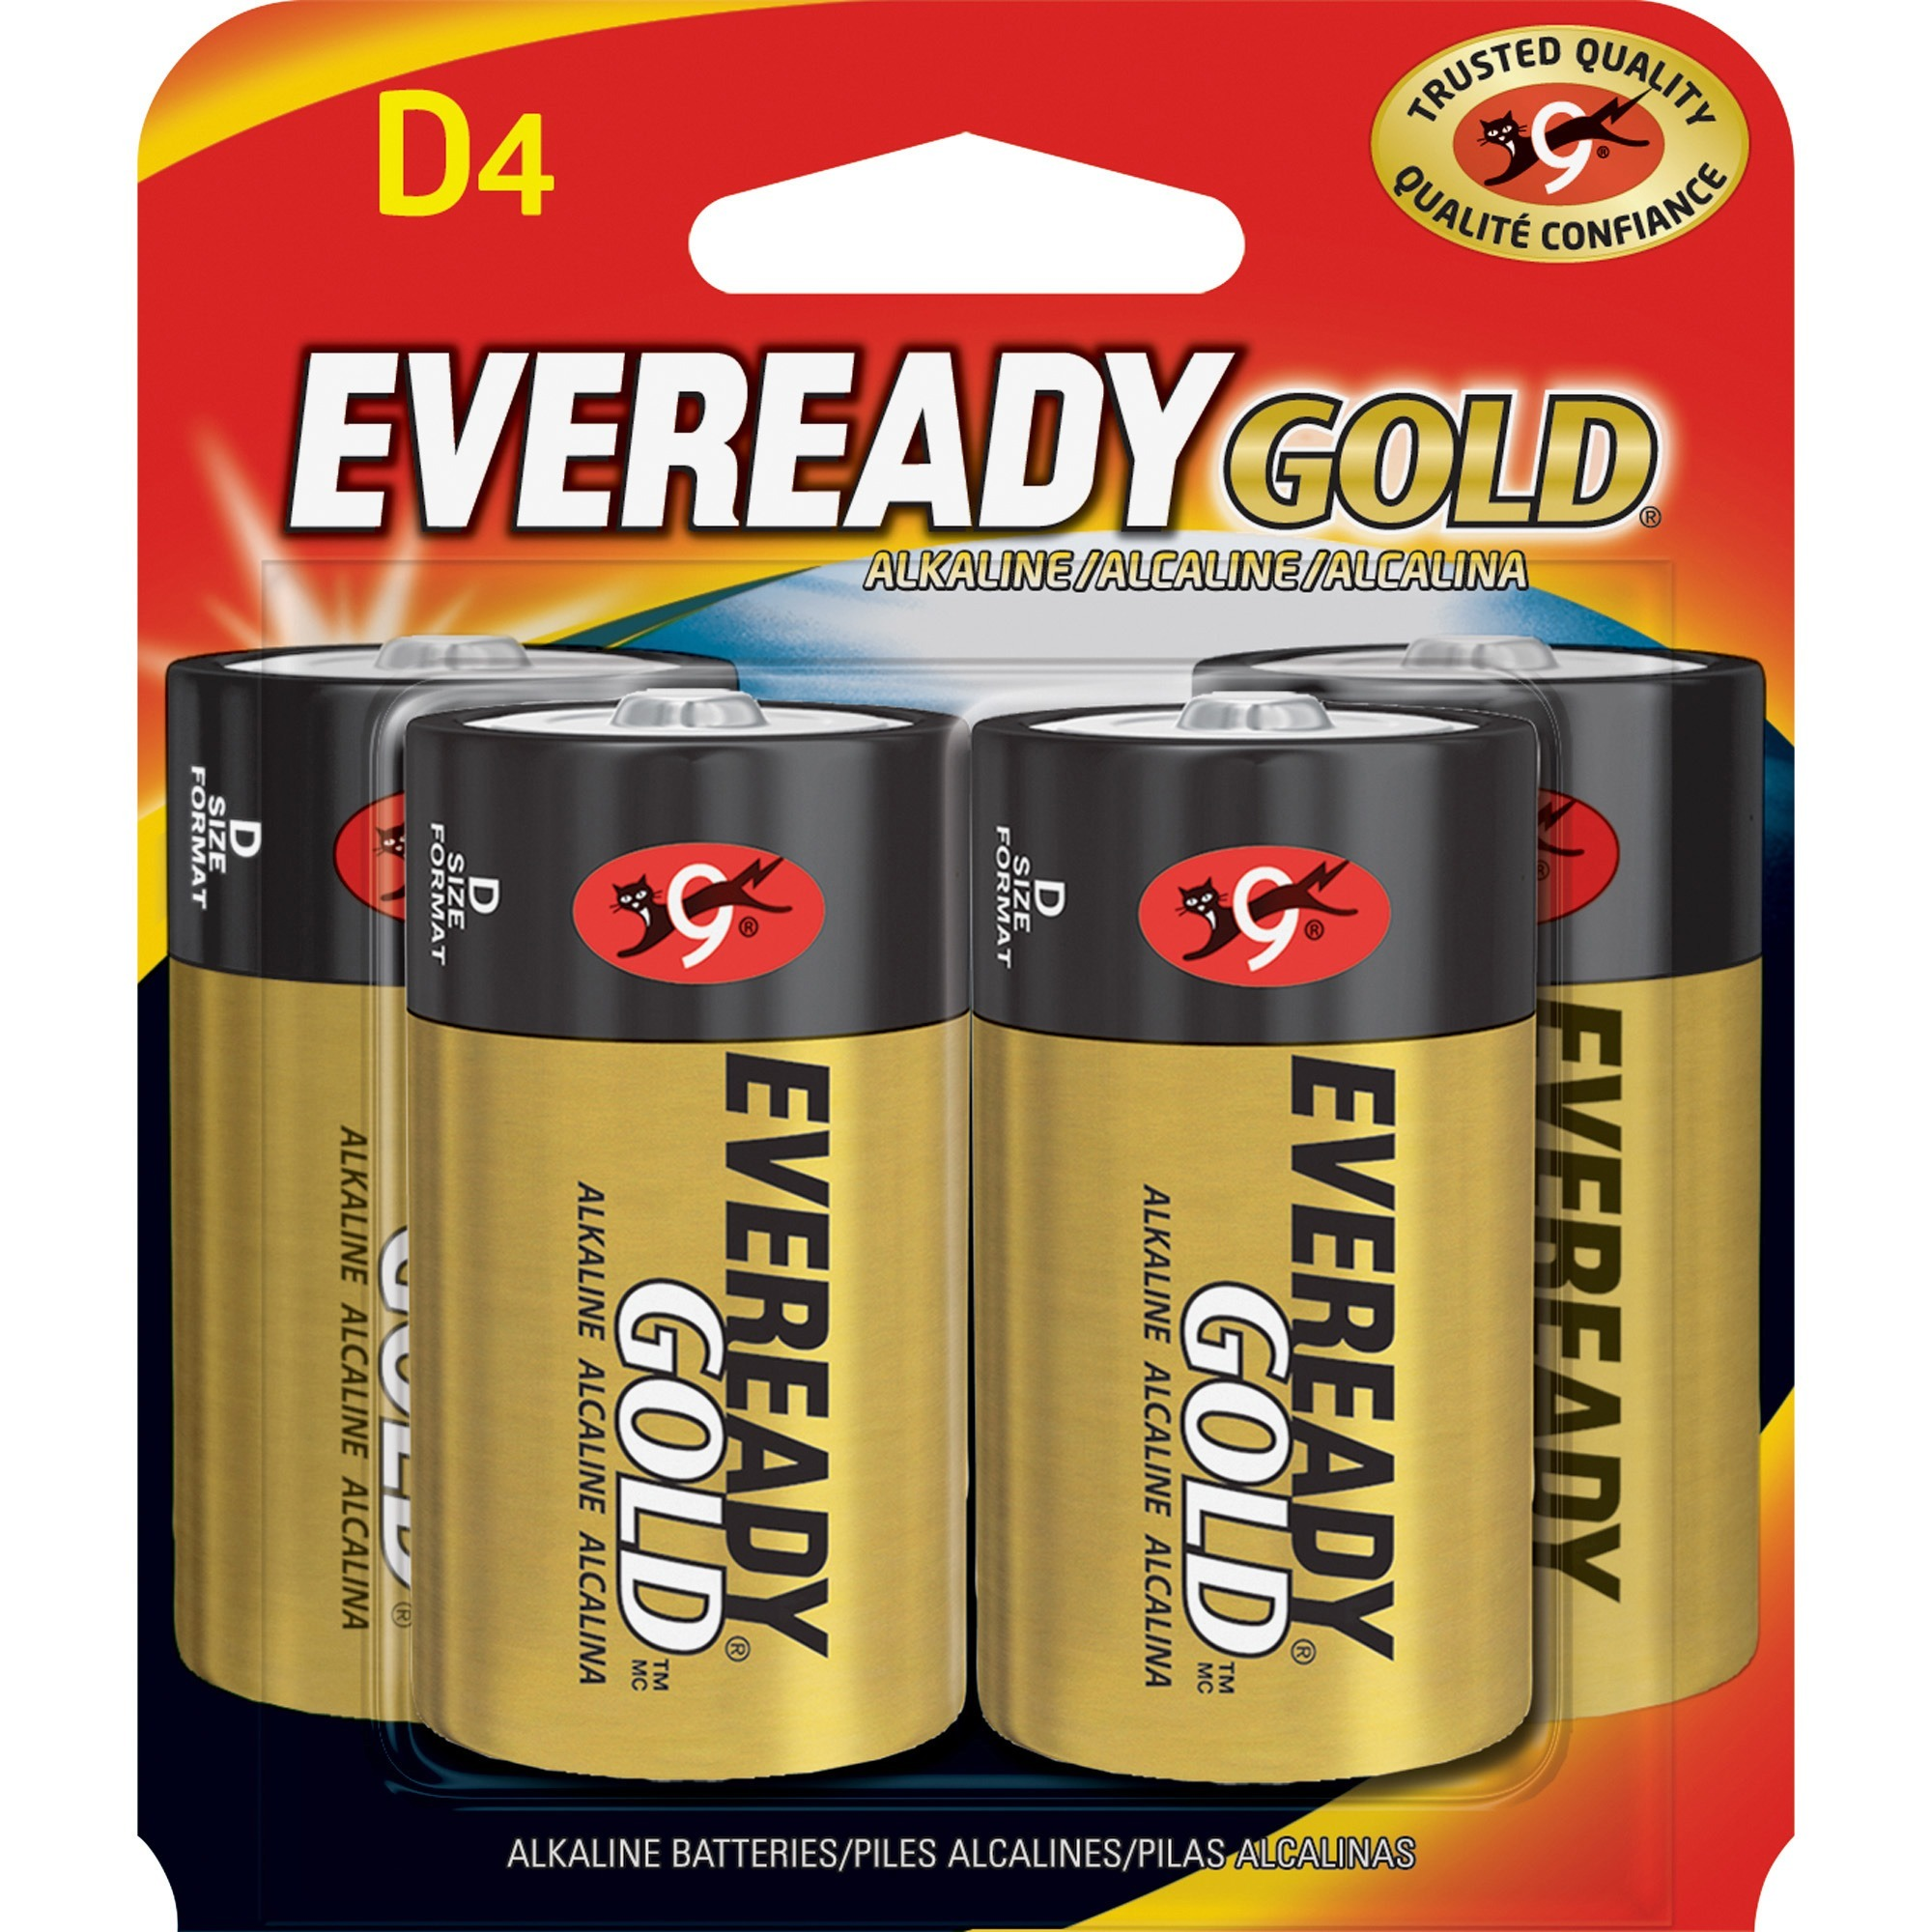 Eveready, EVEA95BP4, Gold Alkaline D Batteries, 4 / Pack, Red